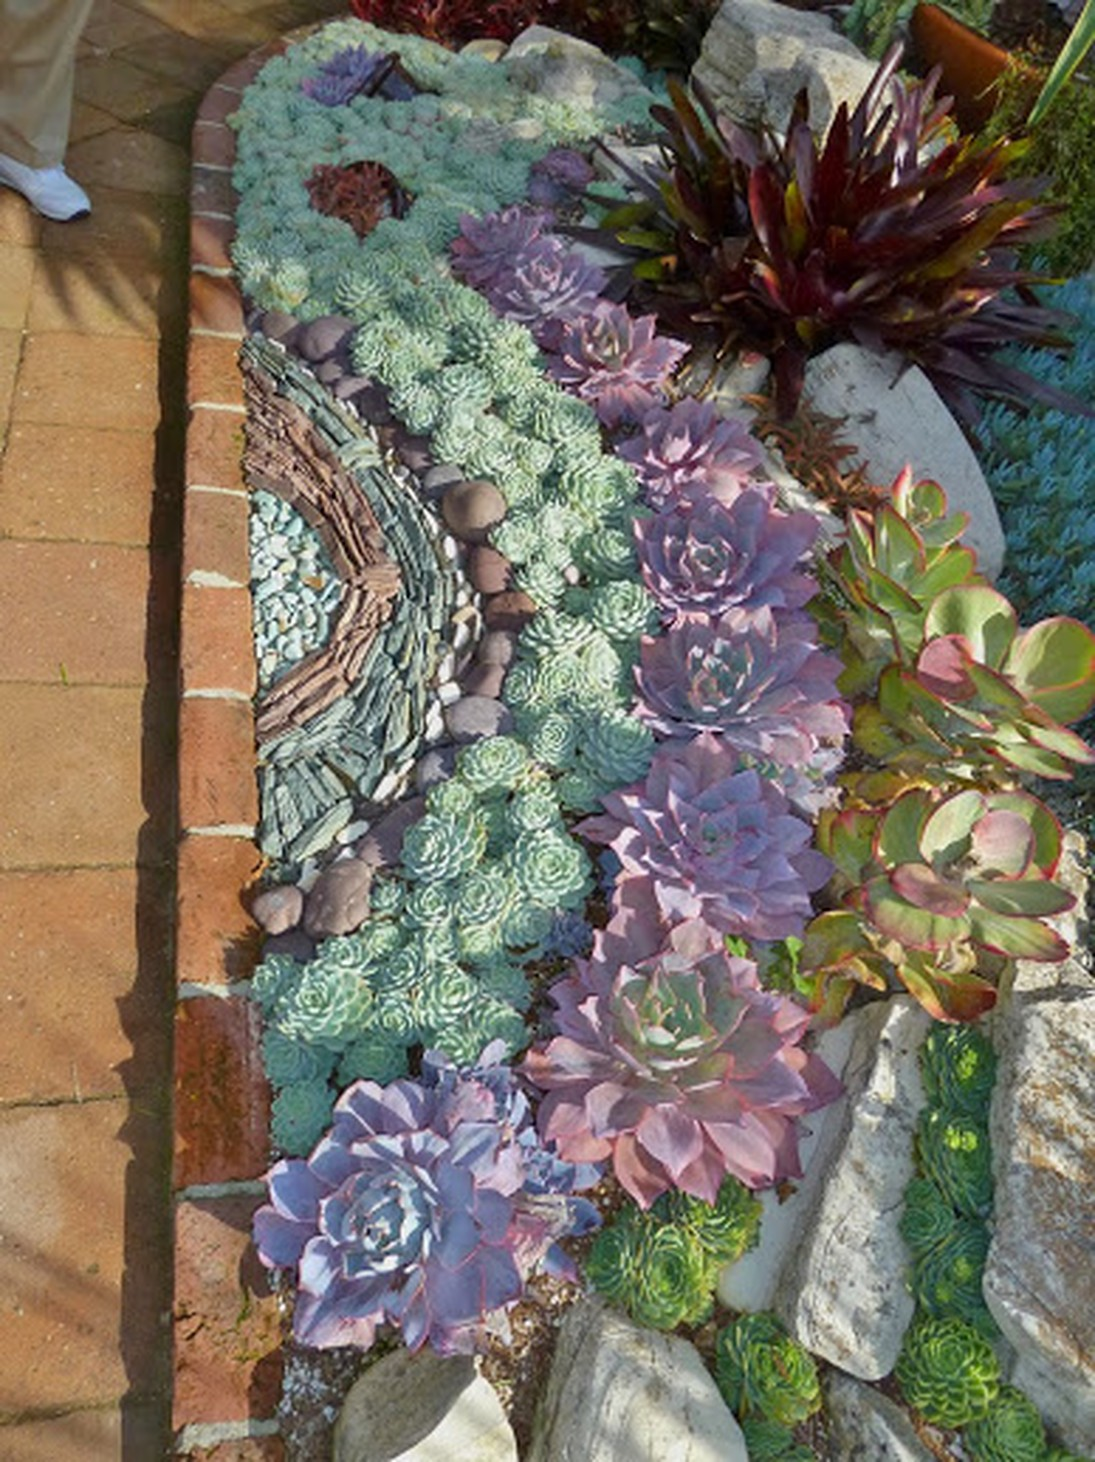 50 Best Succulent Garden Ideas for 2016 on Tree Planting Ideas For Backyard id=37642